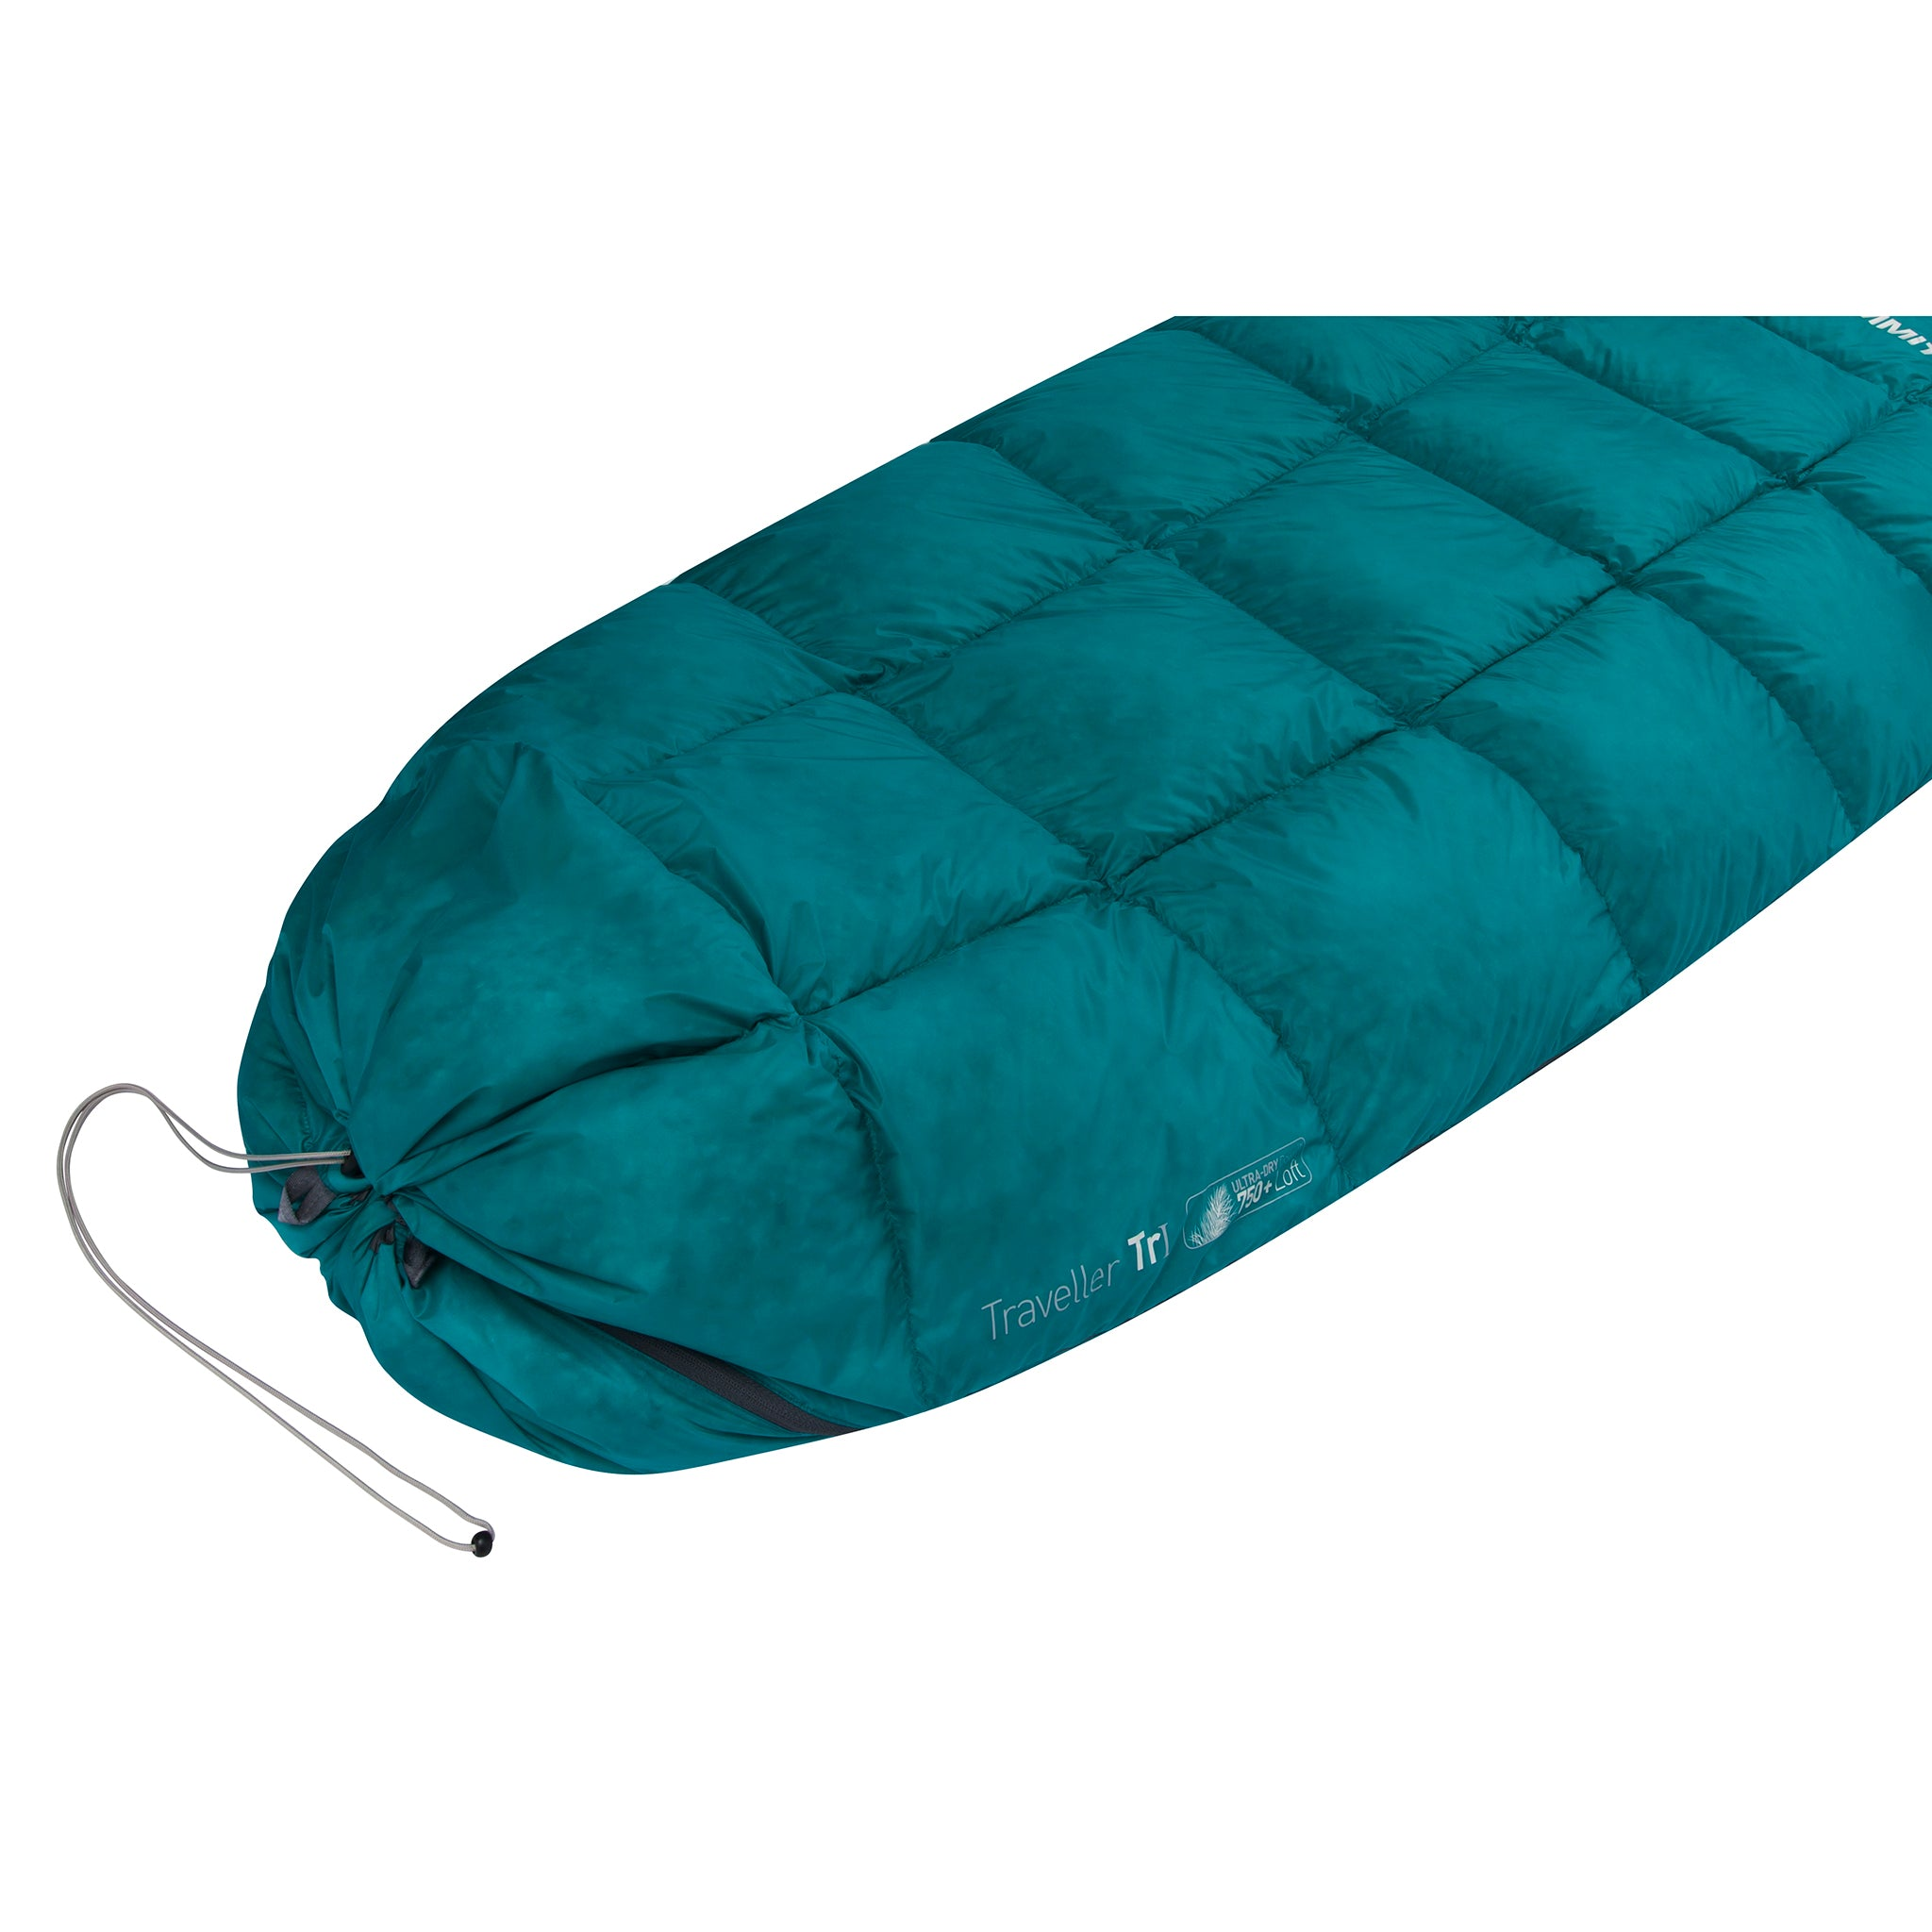 Traveller Sleeping Bag & Blanket (50°F & 30°F)